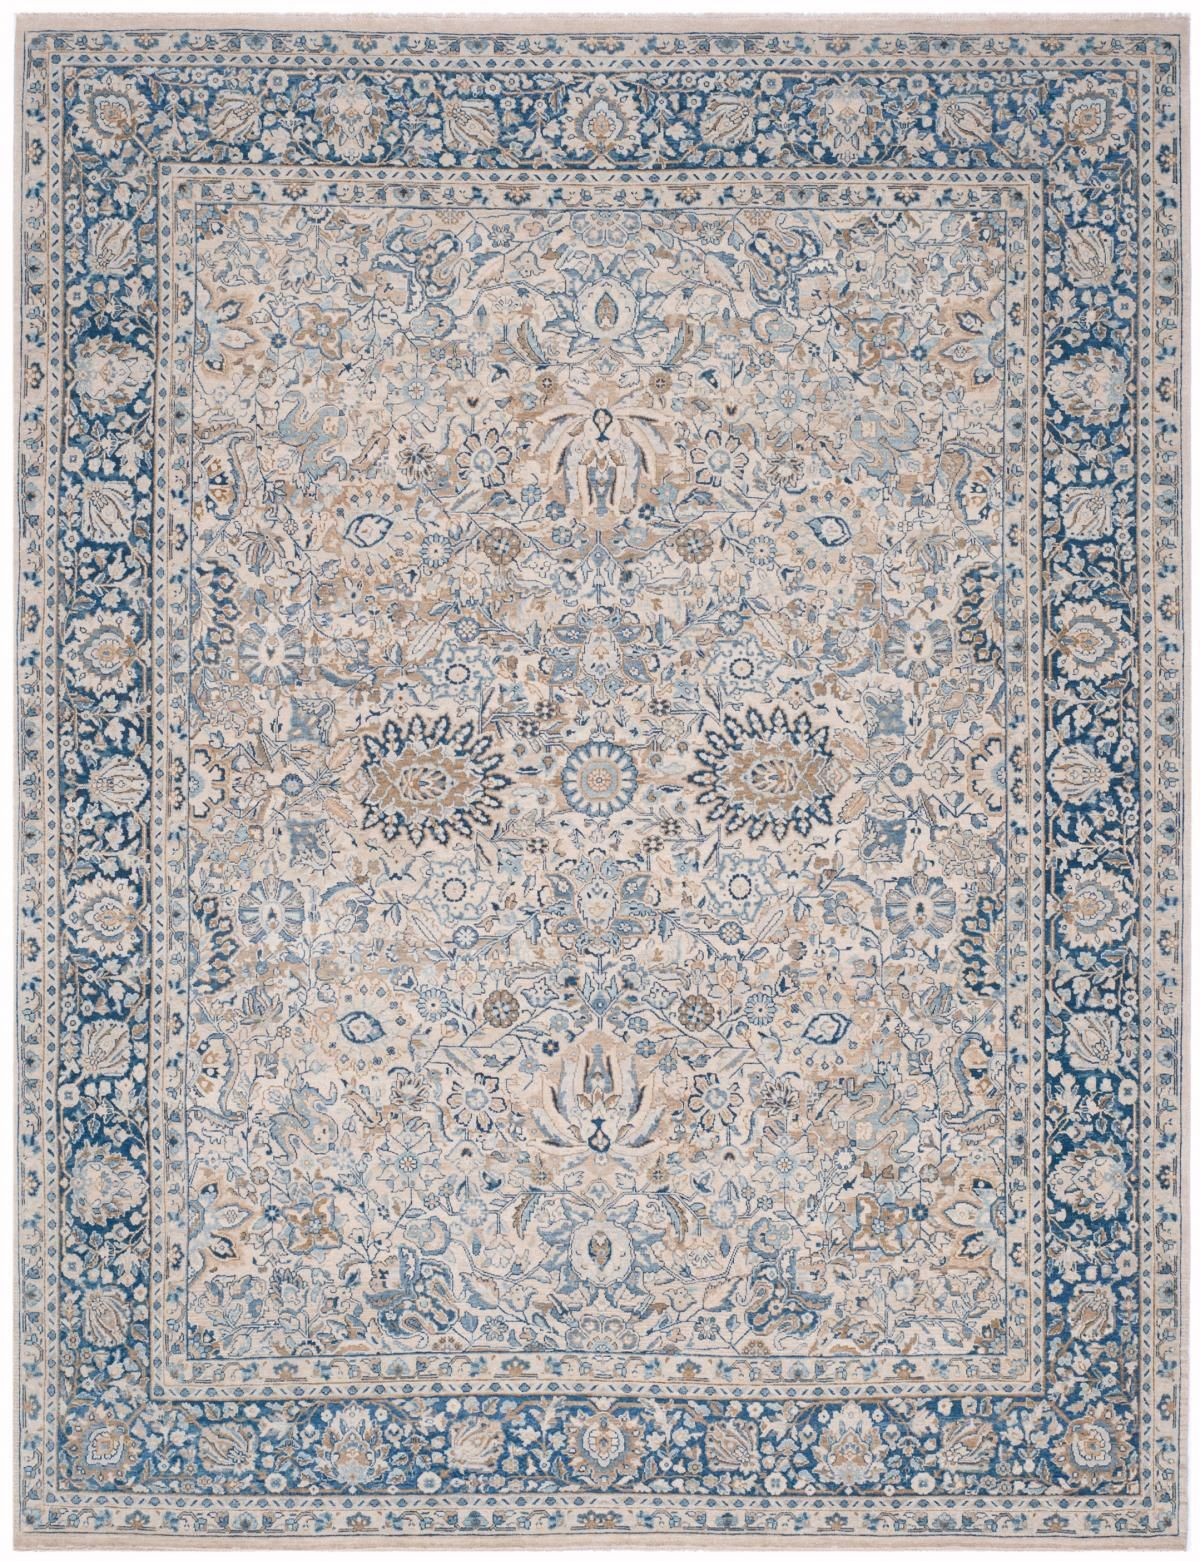 Rlr8285a Imogen Rug From Ralph Lauren Collection Based On An Antique Persian Lavar Kerman Carpet The Home Pays Tribute To